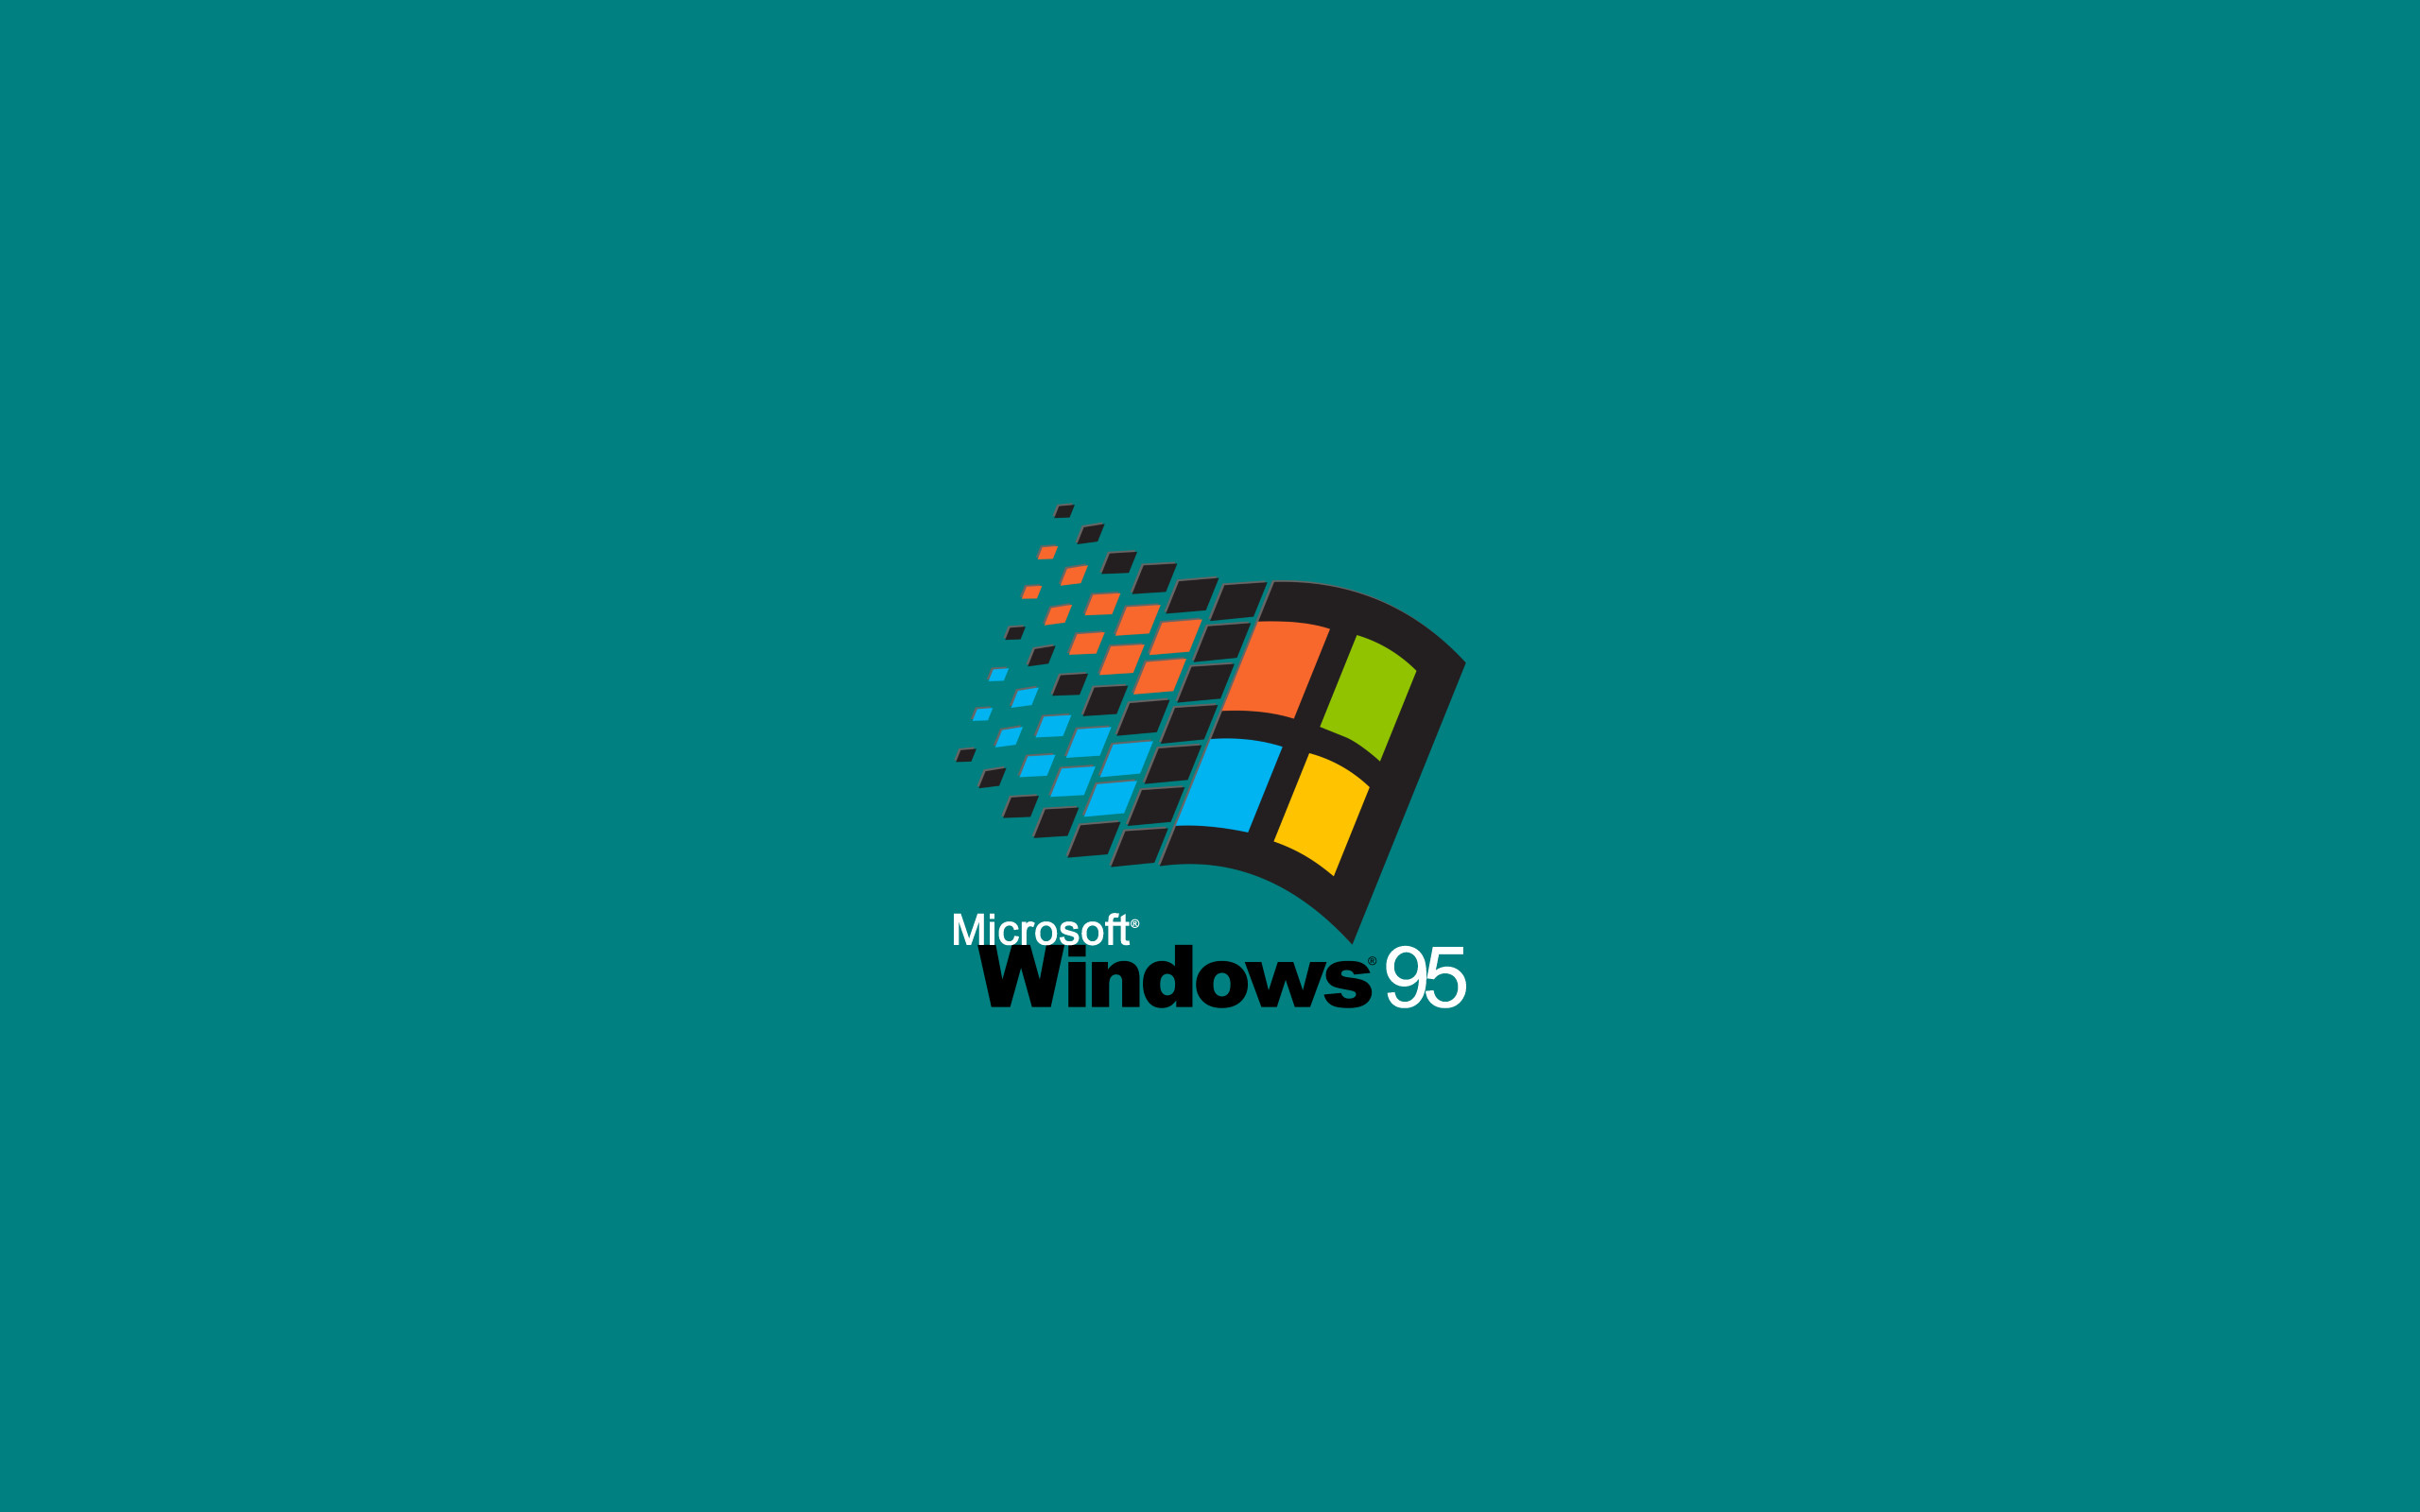 Windows 95 2048×1152 Resolution